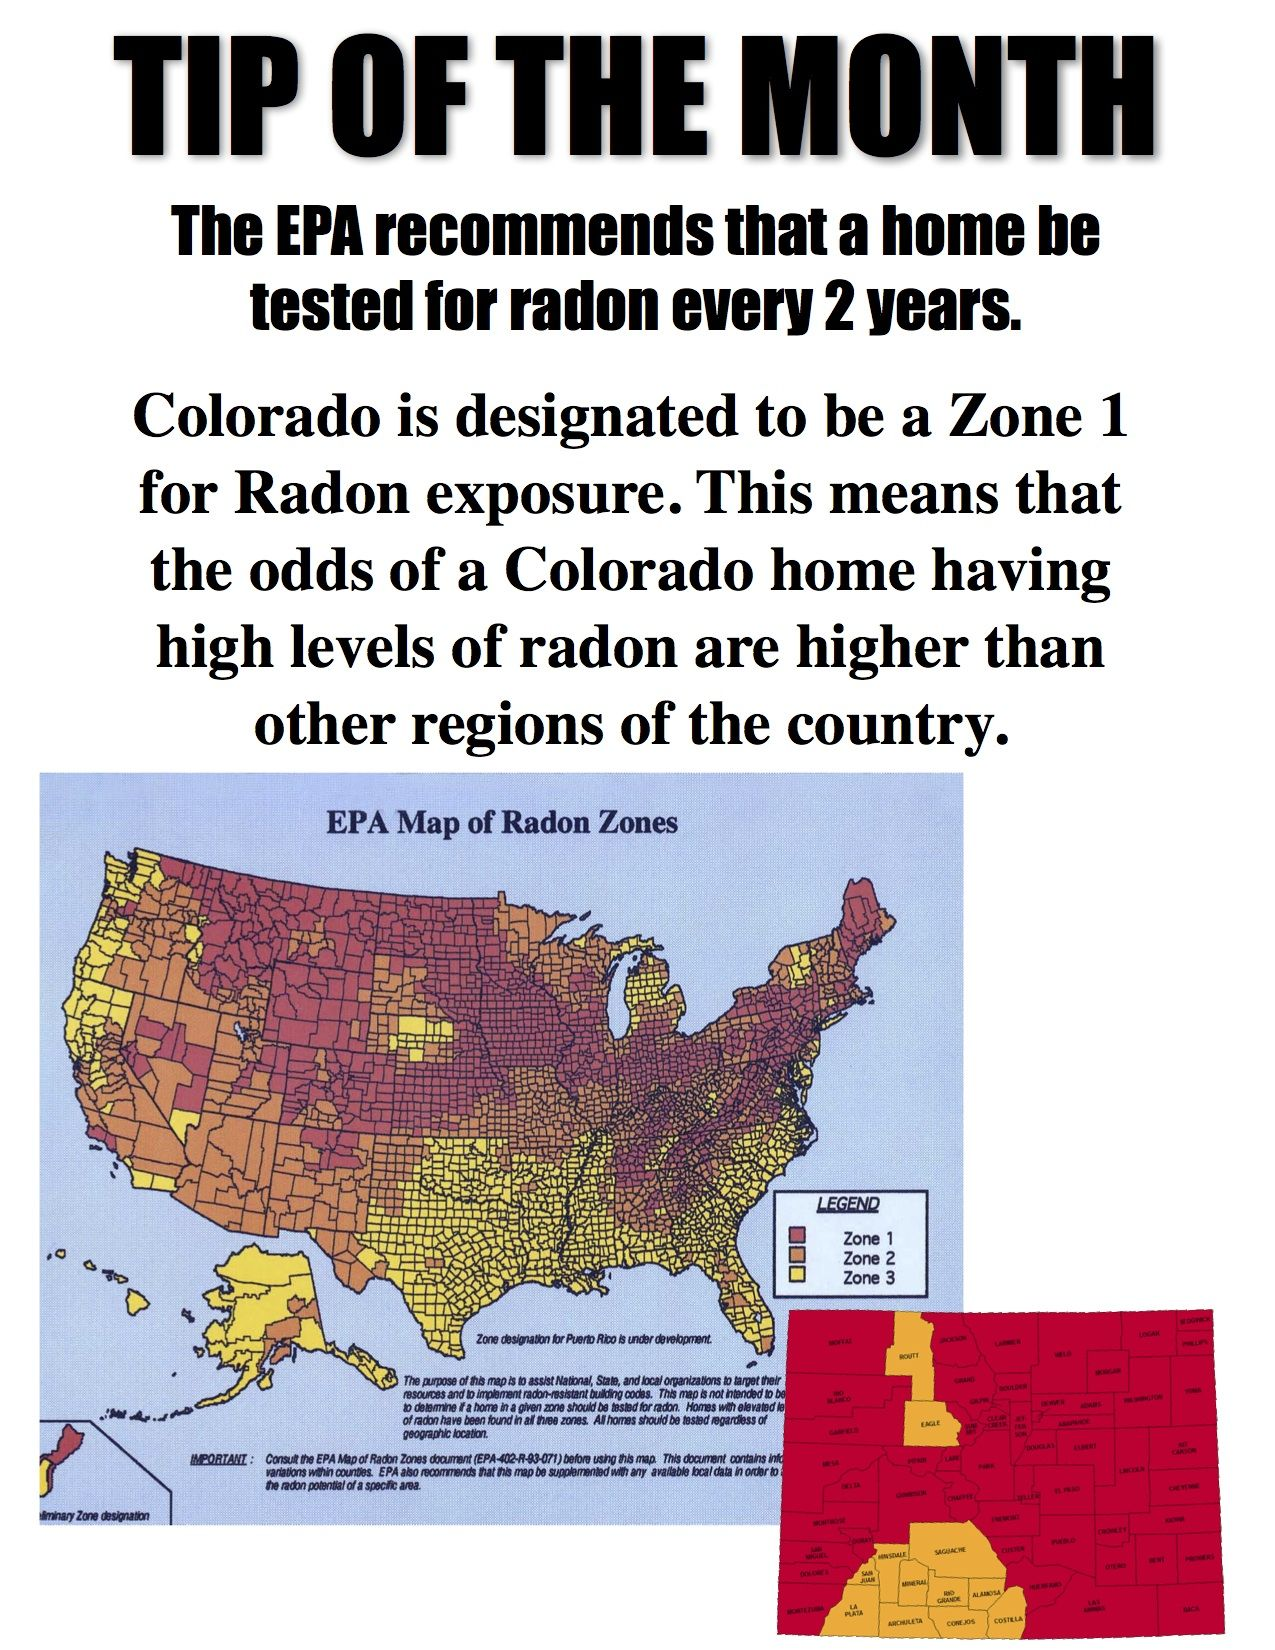 Radon Zone Map Of The United States Focus On Colorado What Is